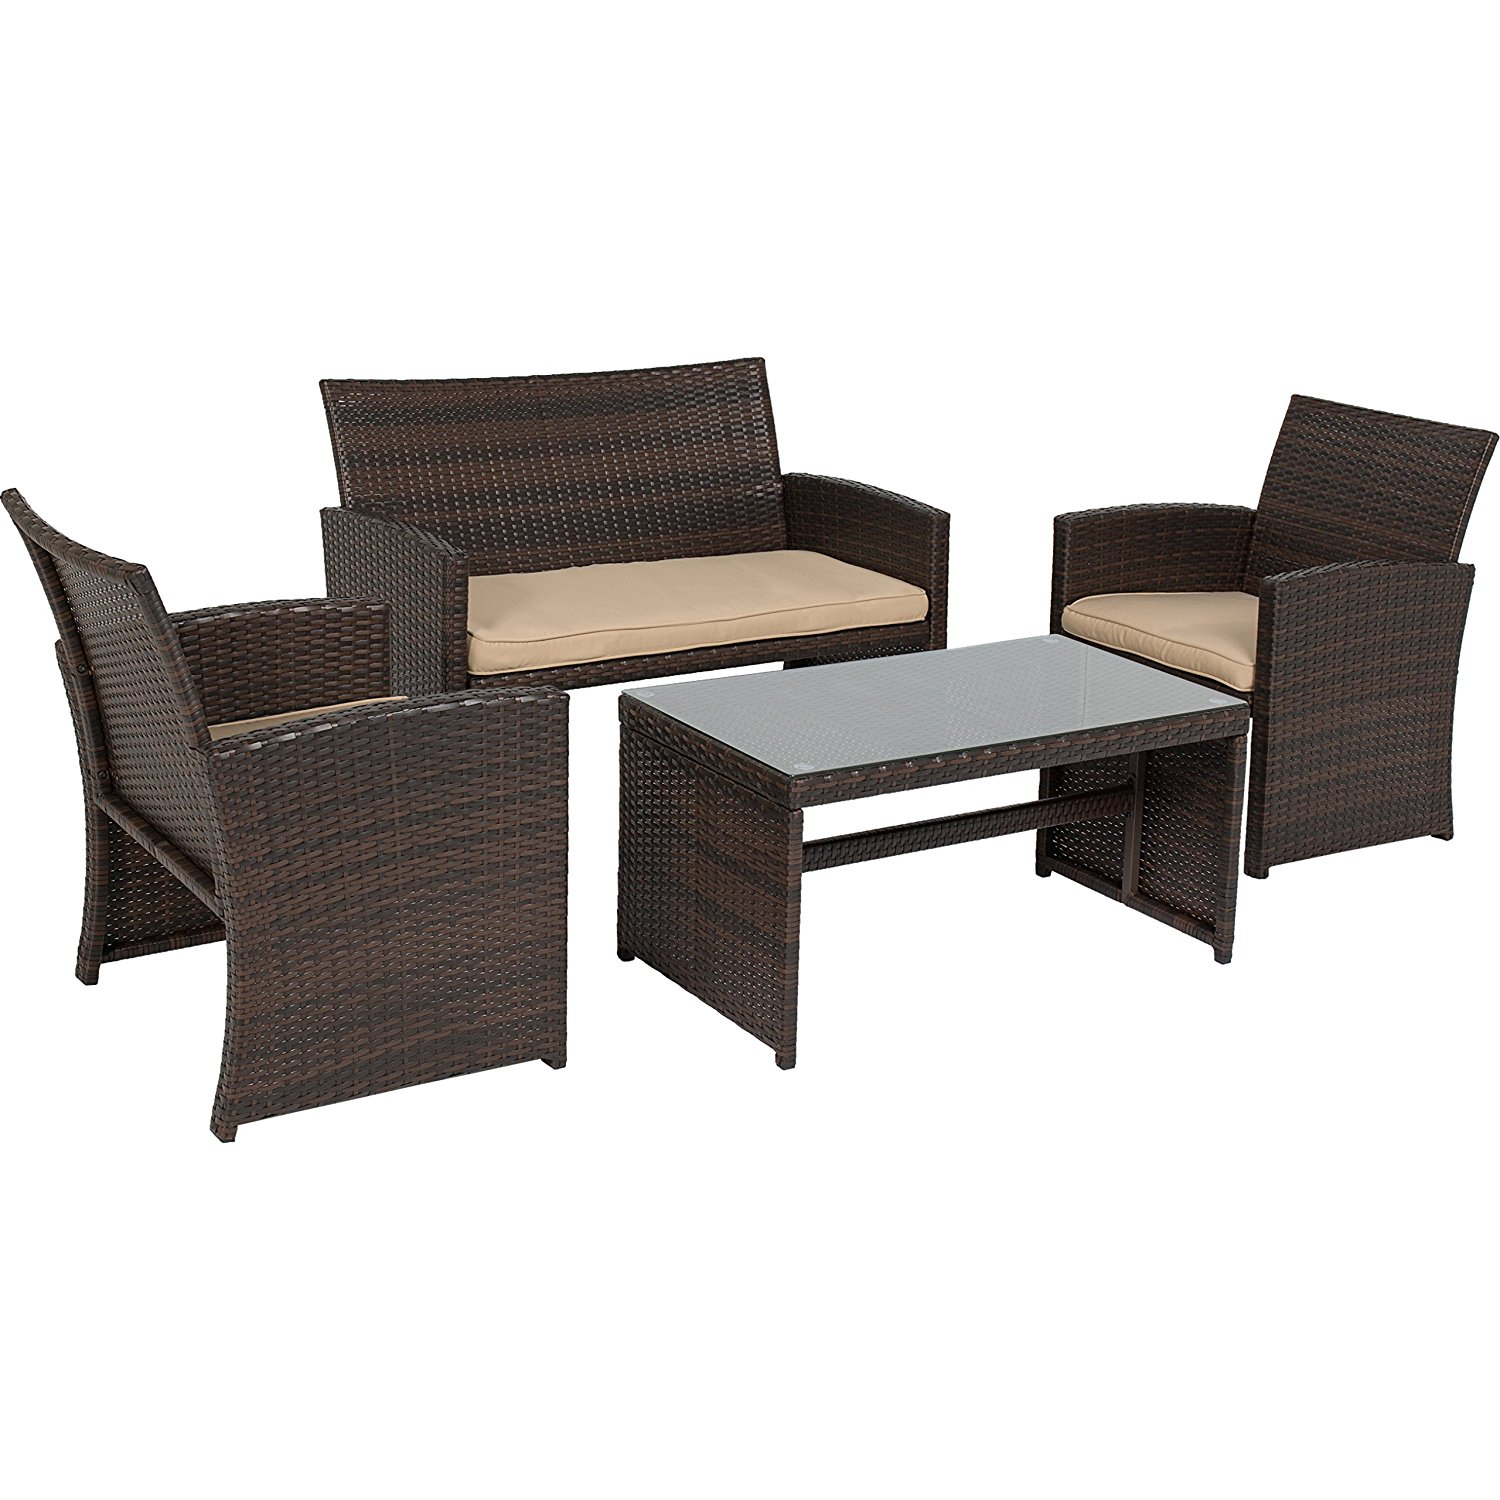 Resin Wicker Patio Furniture Nice Outdoor Addition Cool Ideas For Home